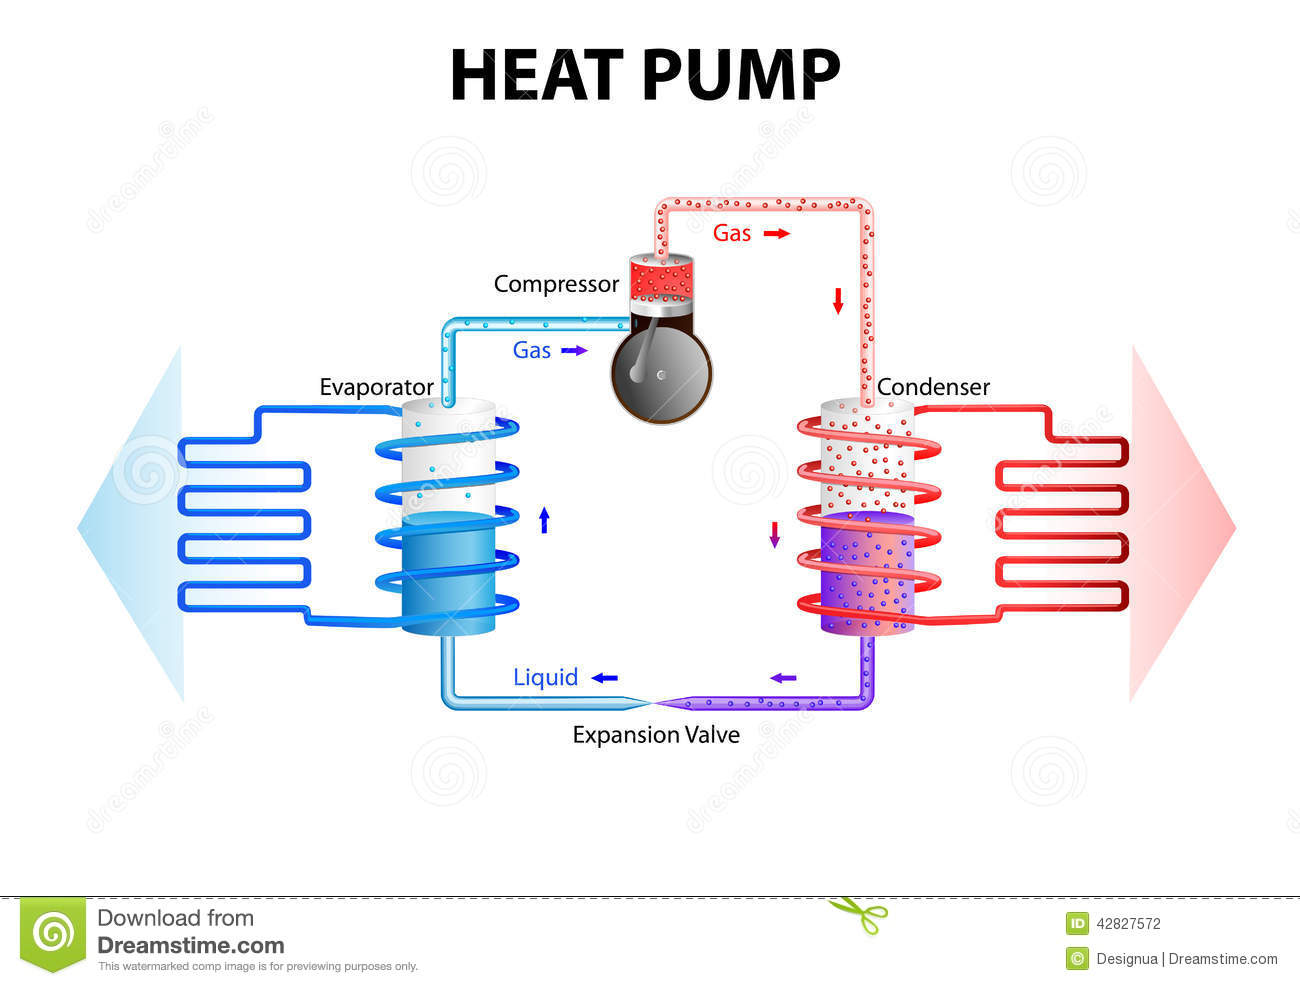 heat pump cooling system works extracting energy stored ground water converts building heating pumps 42827572 how a air conditioner works grihon com ac, coolers & devices how does air conditioning work diagram at cita.asia